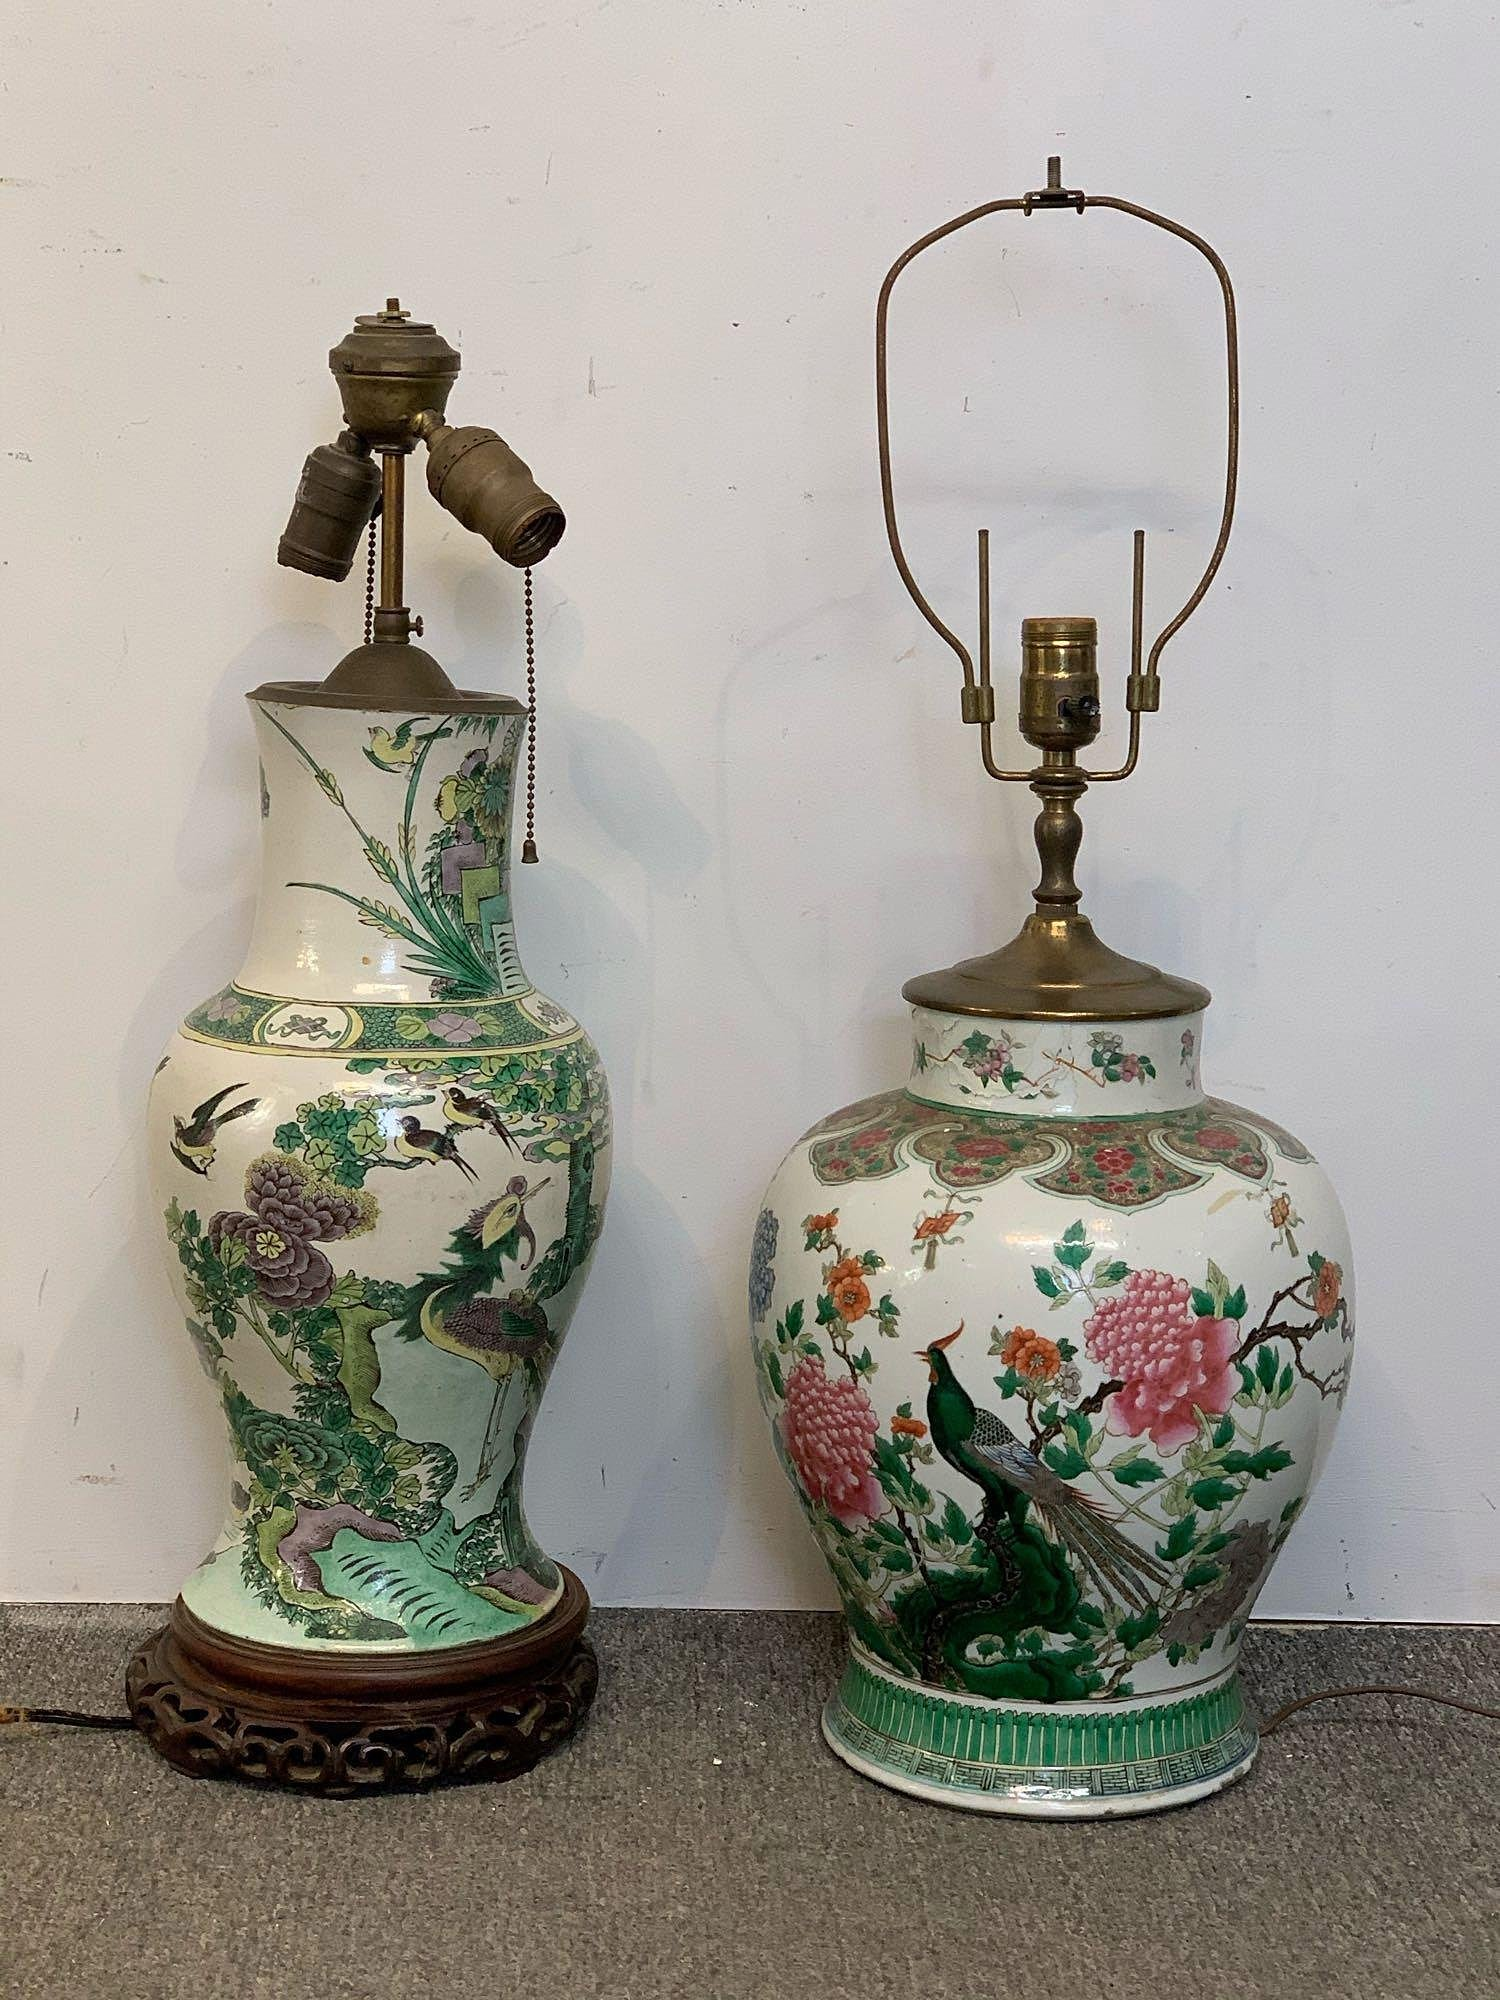 Two Chinese Porcelain Vase Form Lamps